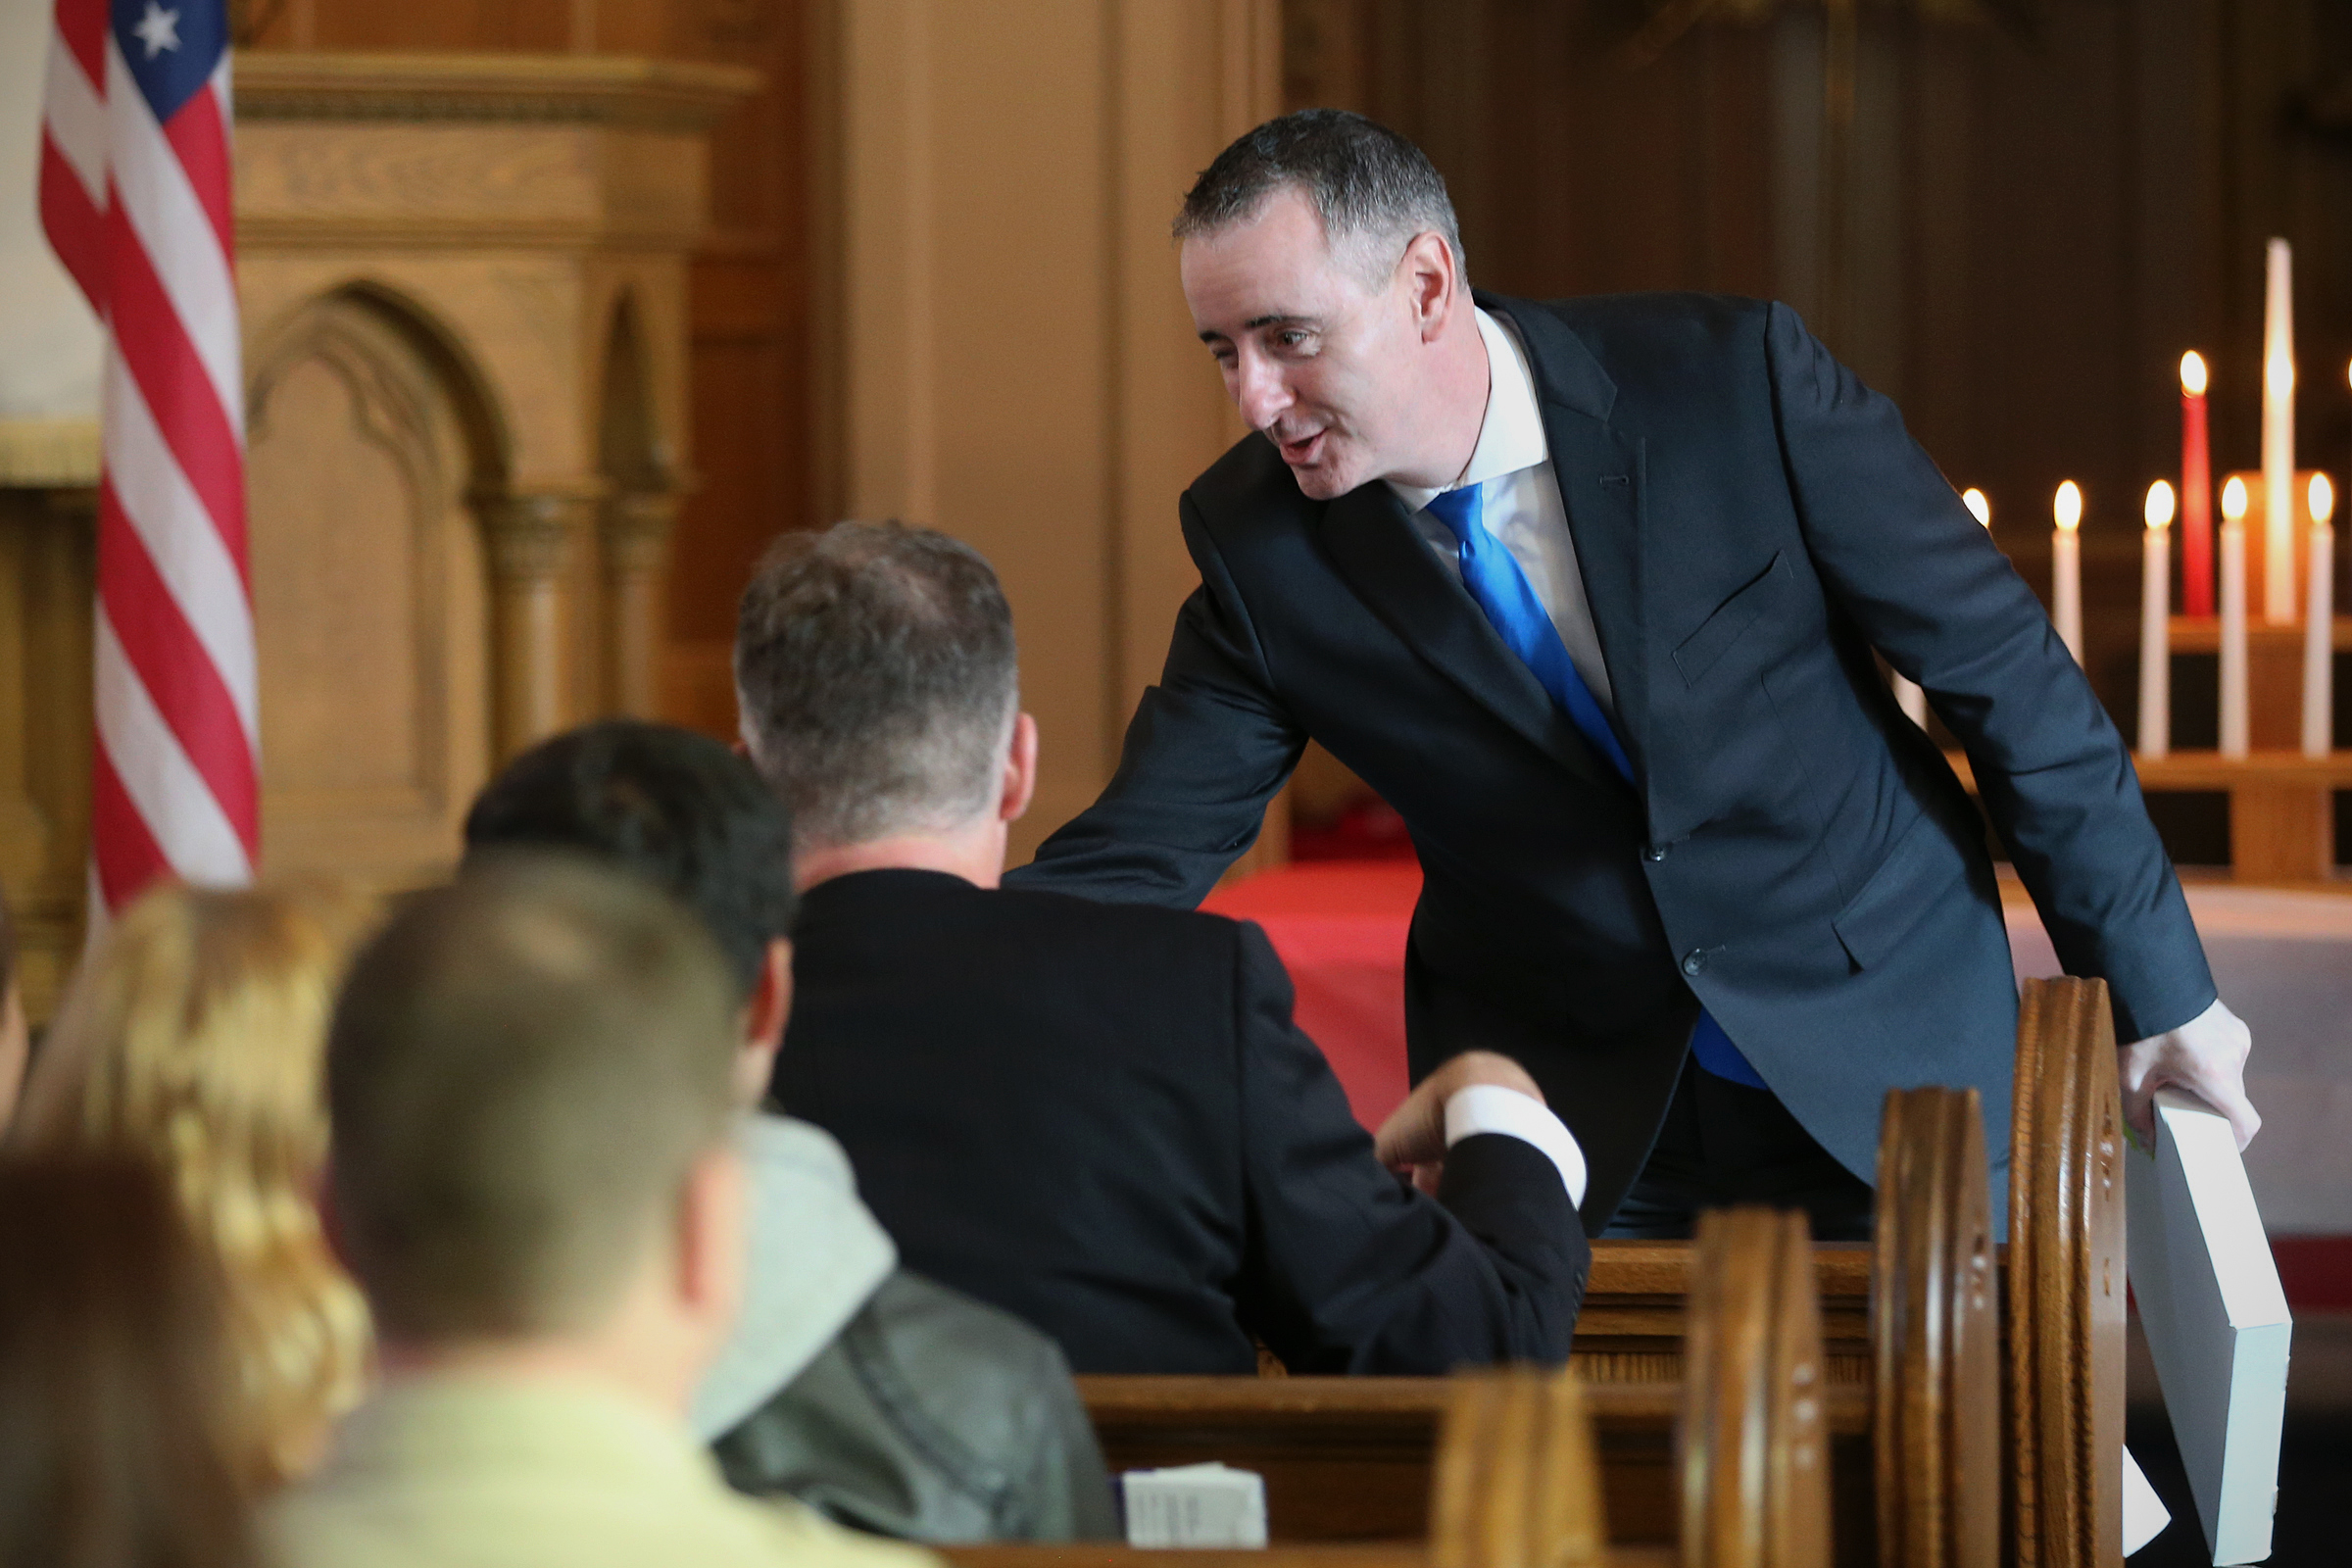 Rep. Brian Fitzpatrick (R-Pa.) attended an Eagle Scout ceremony at St. John´s Lutheran Church in Quakertown, Pa., on Saturday, Nov. 3, 2018. Fitzpatrick, himself an Eagle Scout, is running against Democratic candidate Scott Wallace.